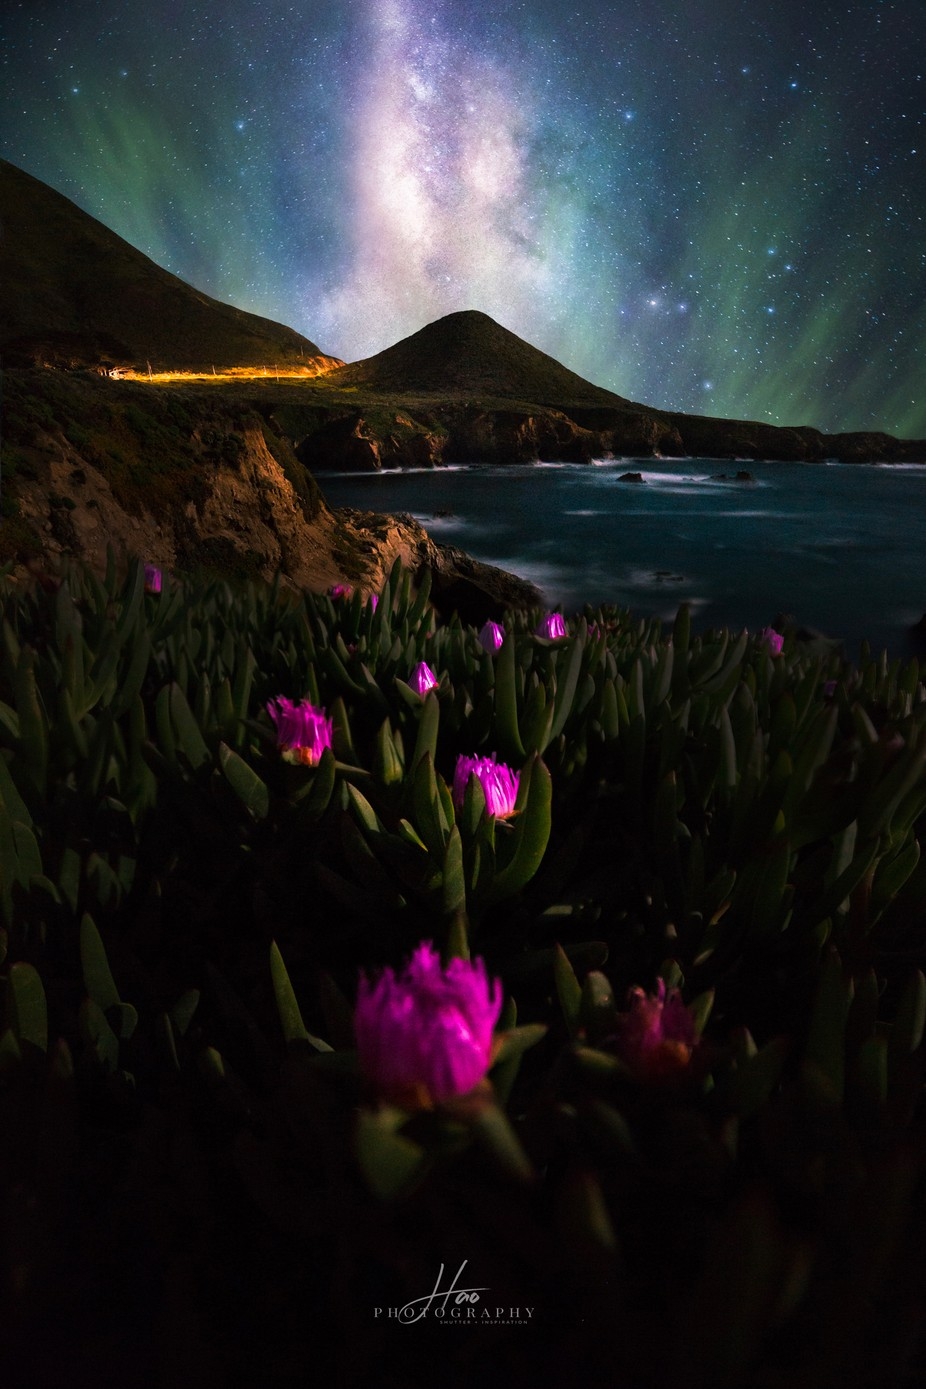 A story of Fantasy by Haophotography - Capture The Milky Way Photo Contest